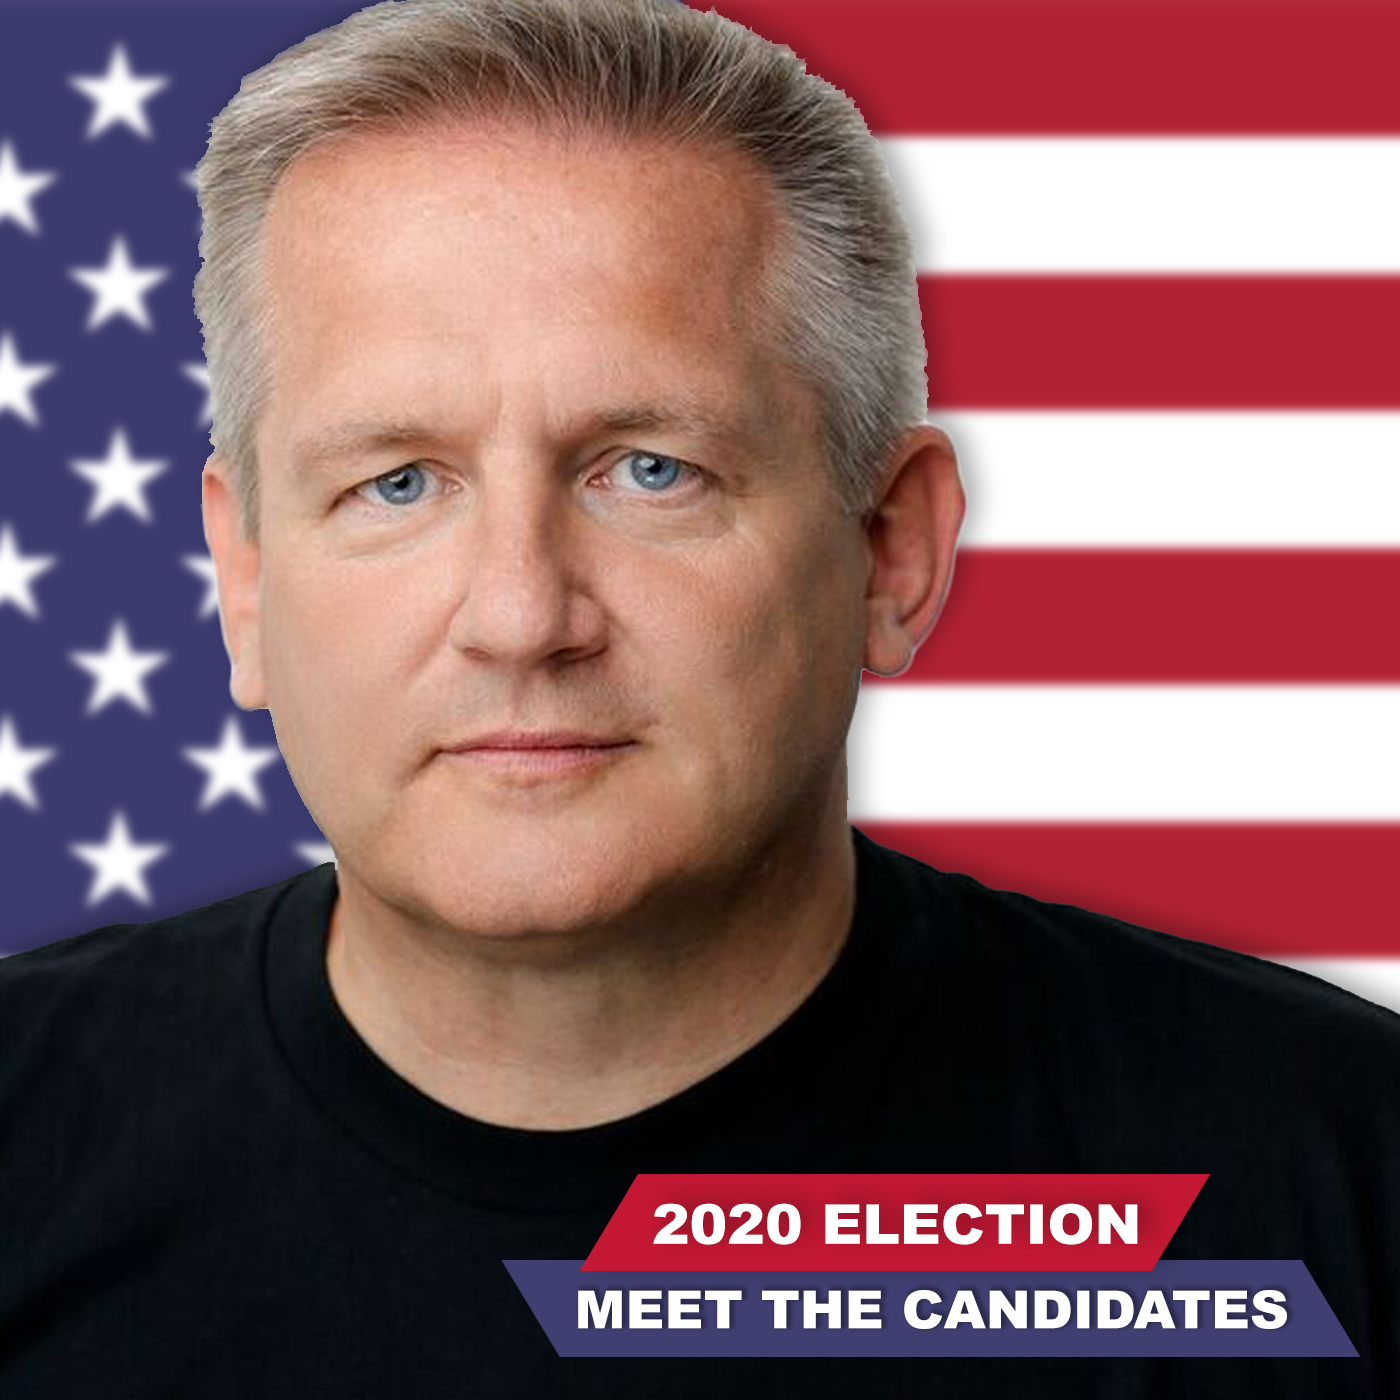 2020 Election: Meet The Candidates